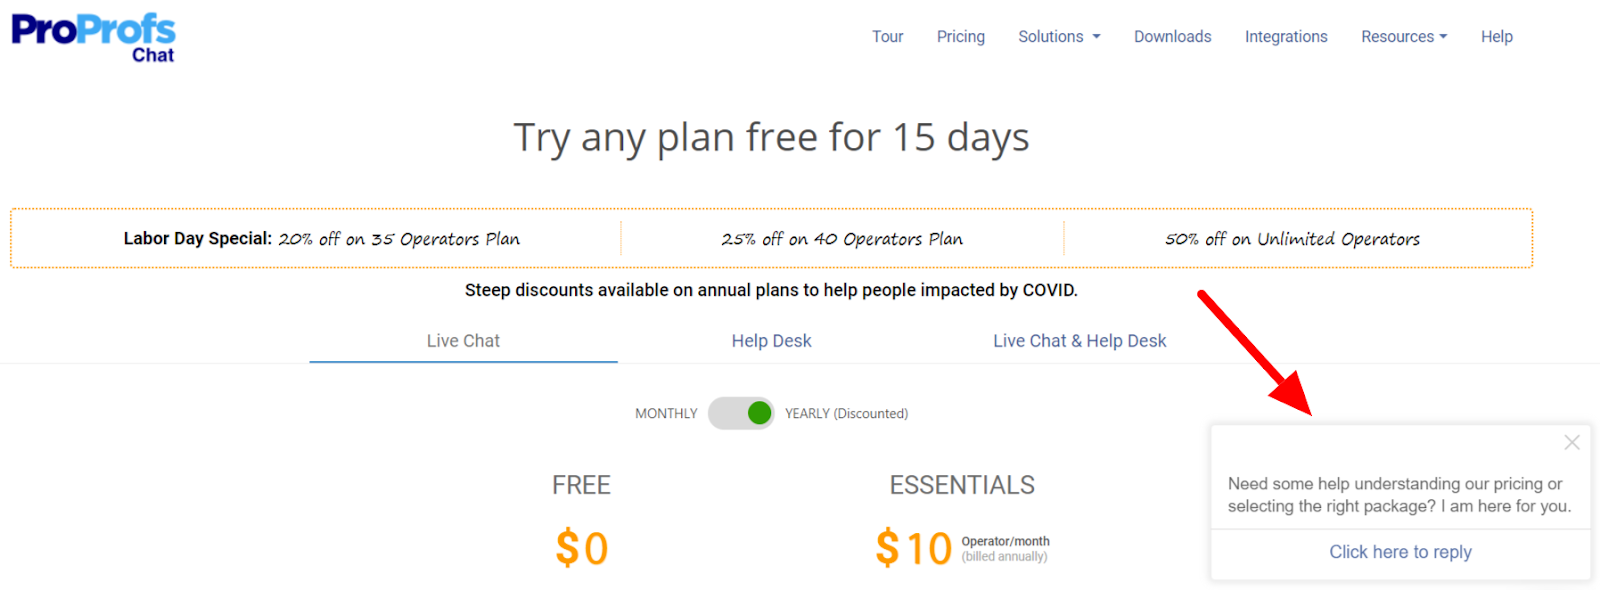 live chat pricing page help